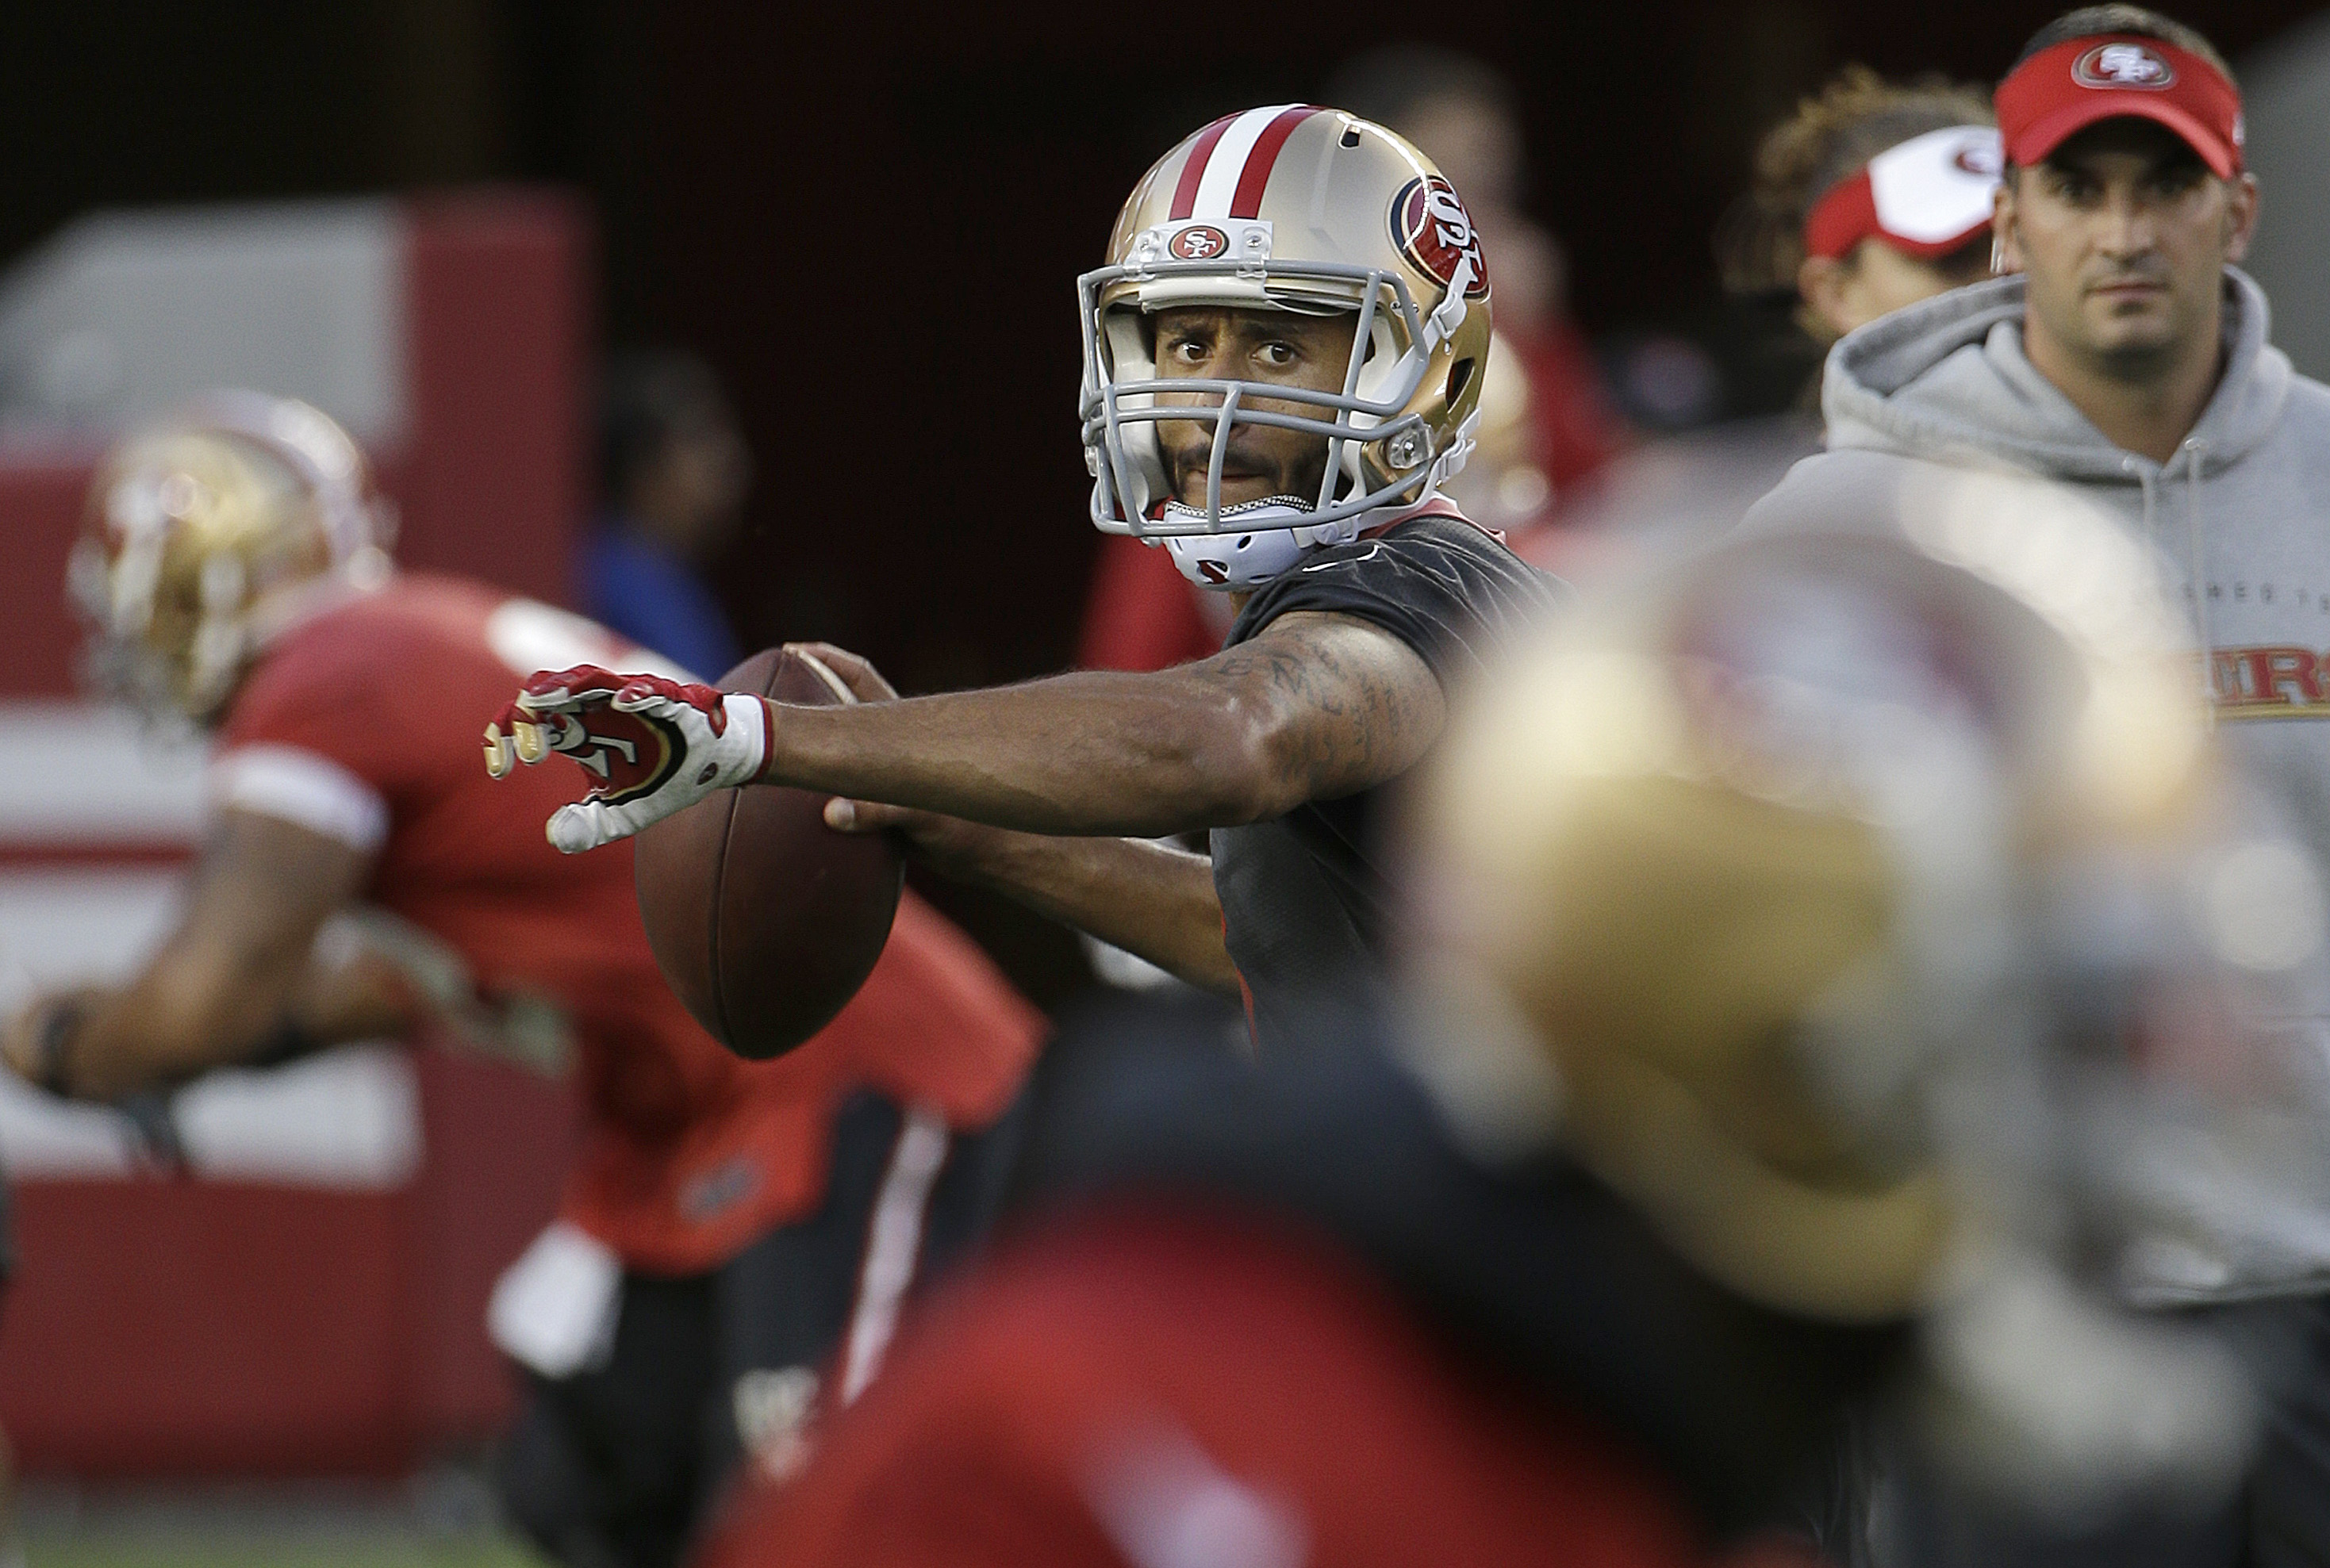 San Francisco 49ers quarterback Colin Kaepernick (7) throws a pass during the team's NFL football training camp in Santa Clara, Calif., Saturday, Aug. 1, 2015. (AP Photo/Jeff Chiu)